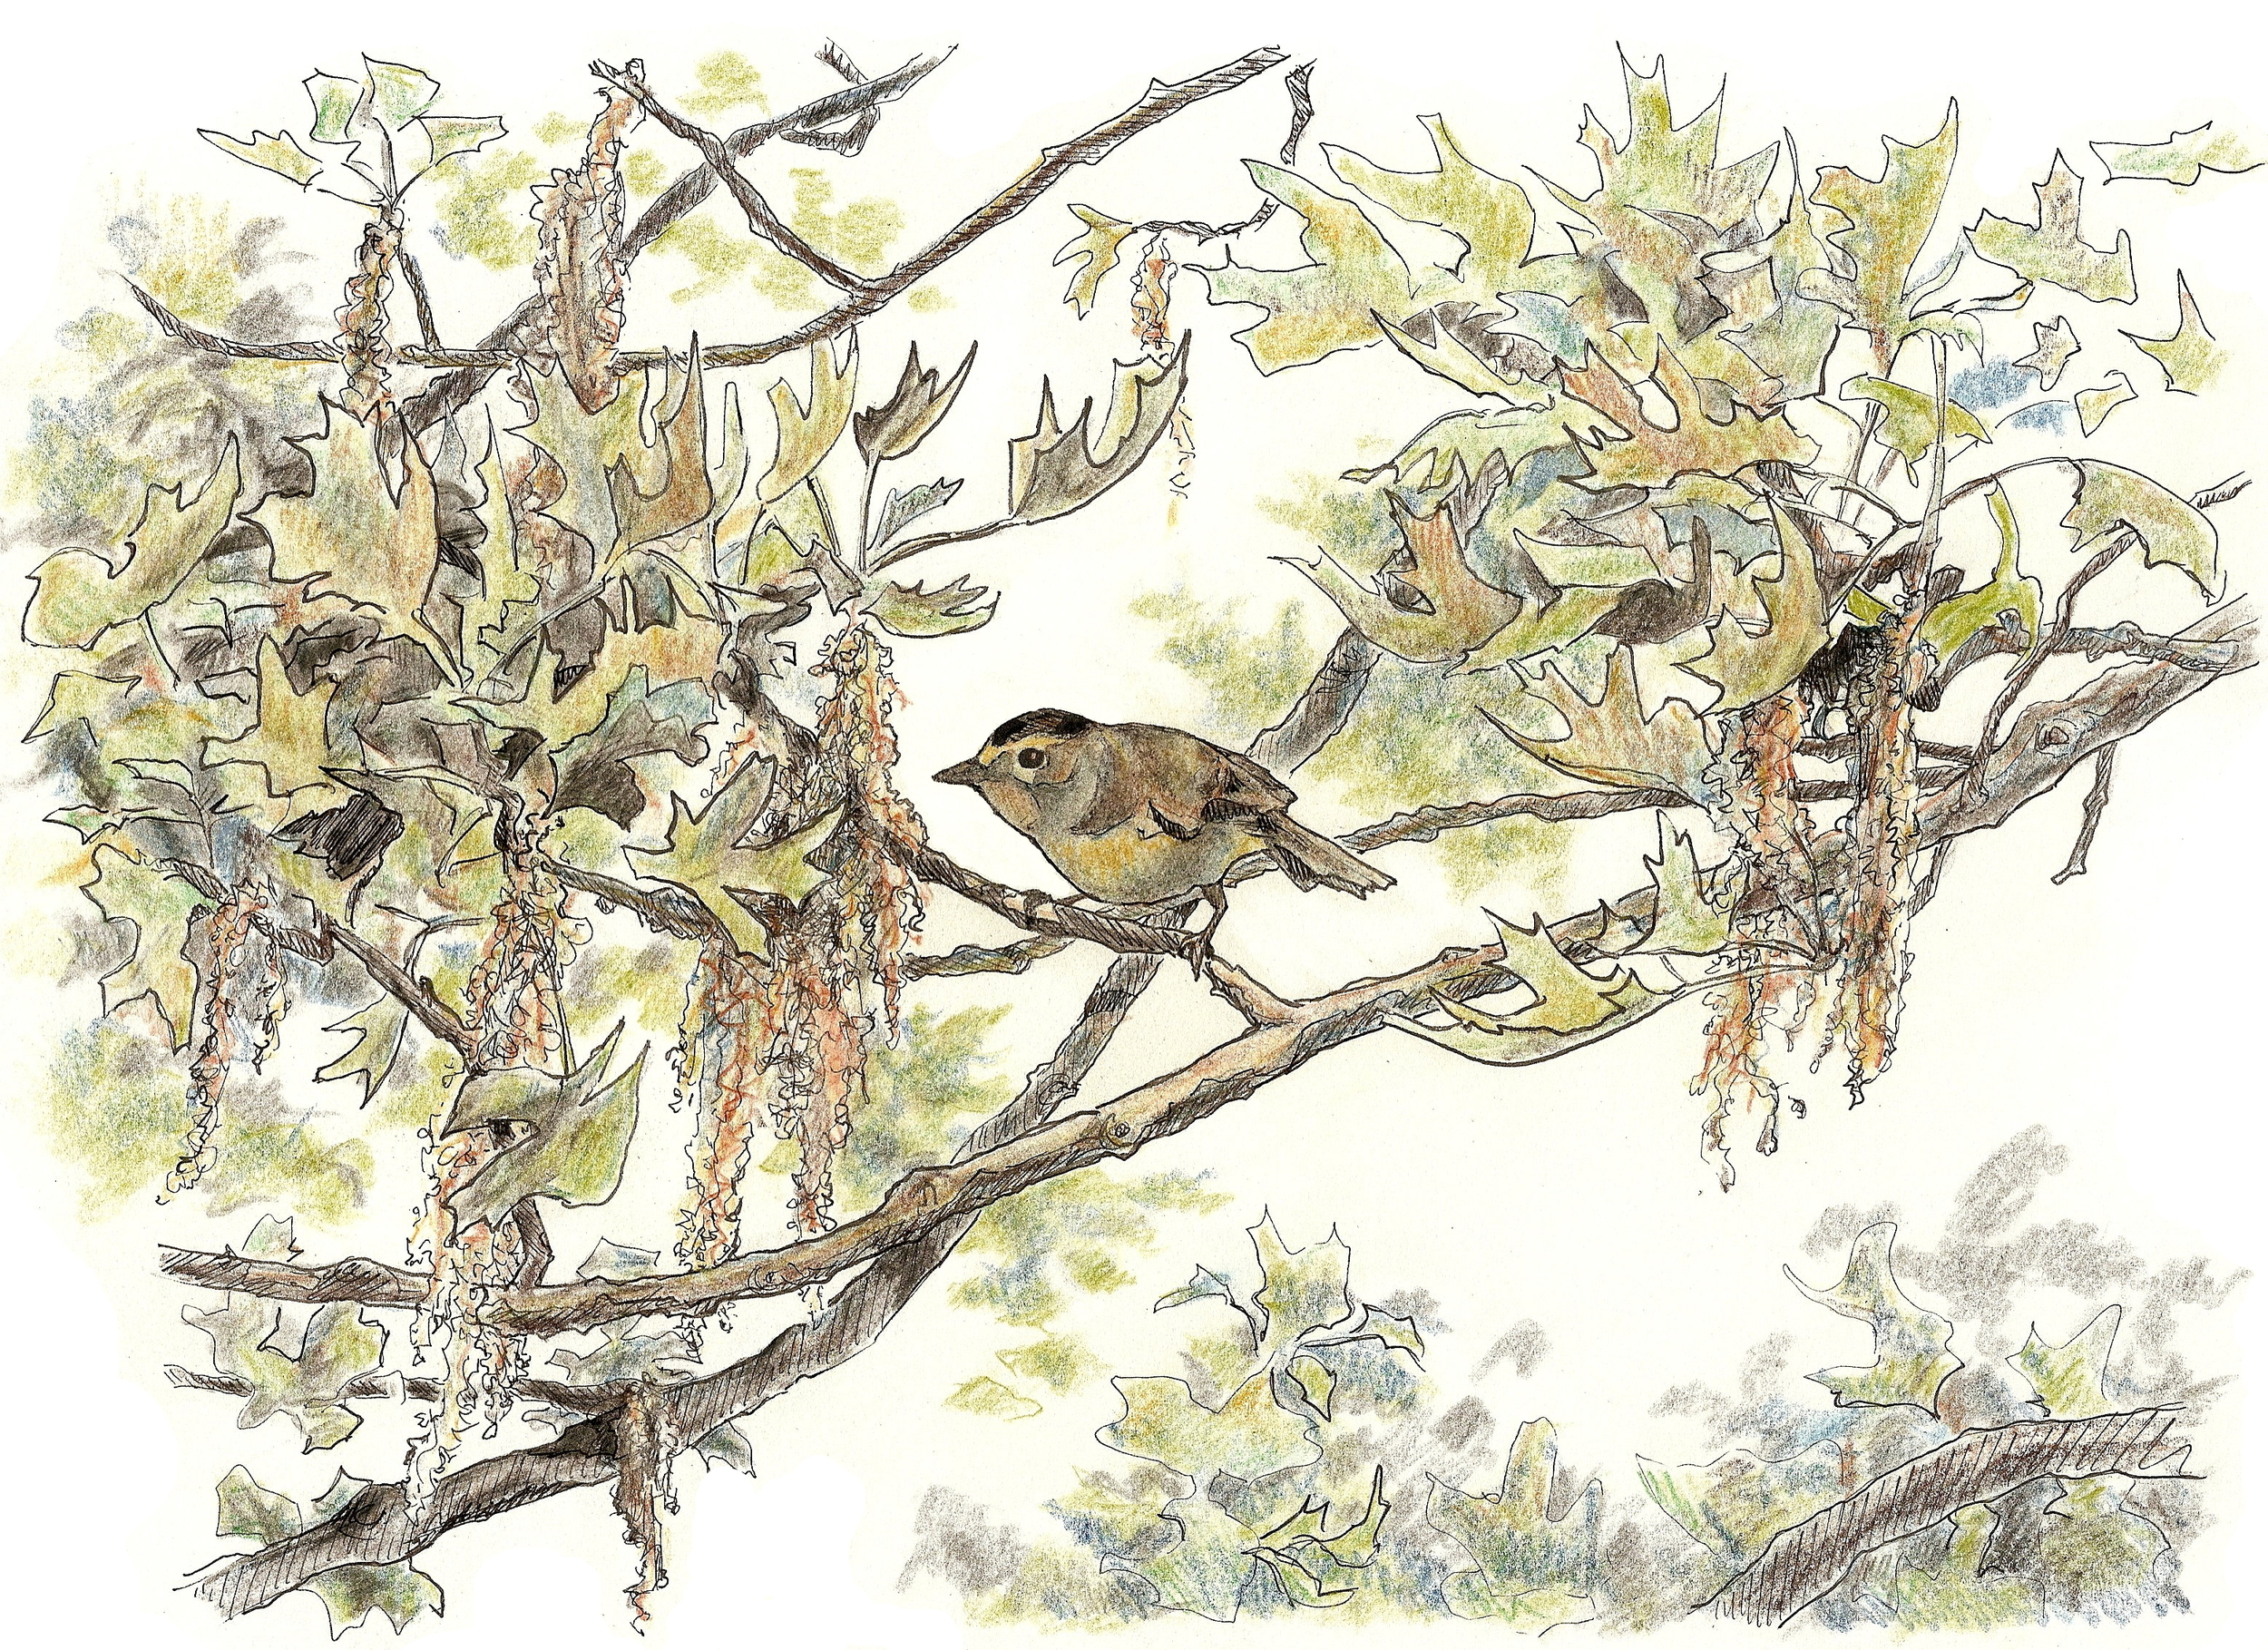 Wilson's Warbler, the star of this study. Drawn in 2008 for Acadia Birding Festival.